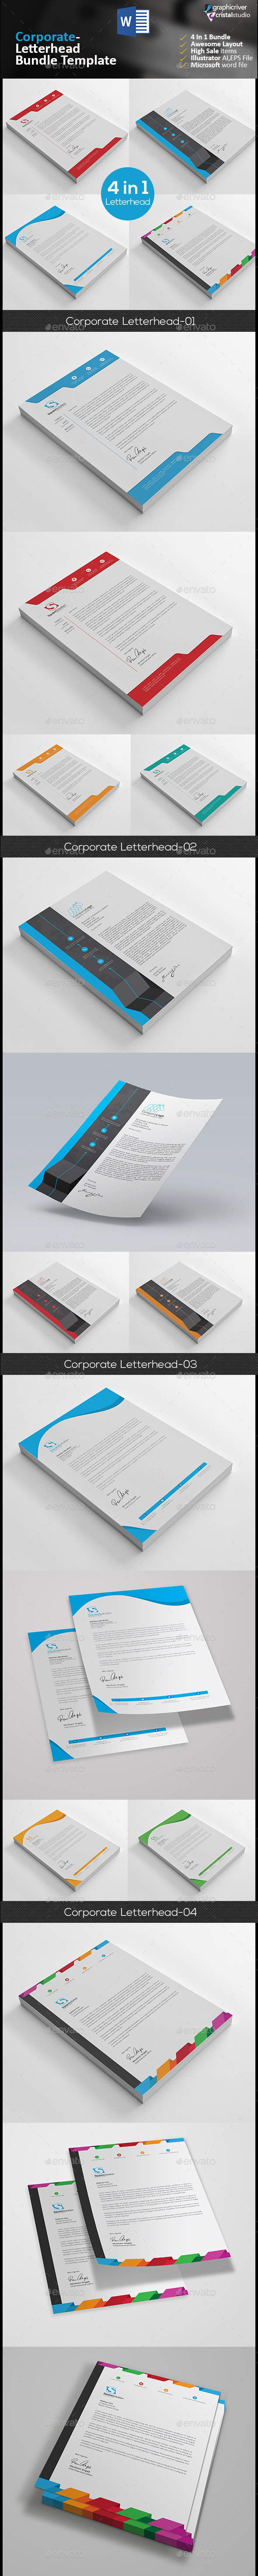 Letterhead Bundle 4 in 1 - Stationery Print Templates